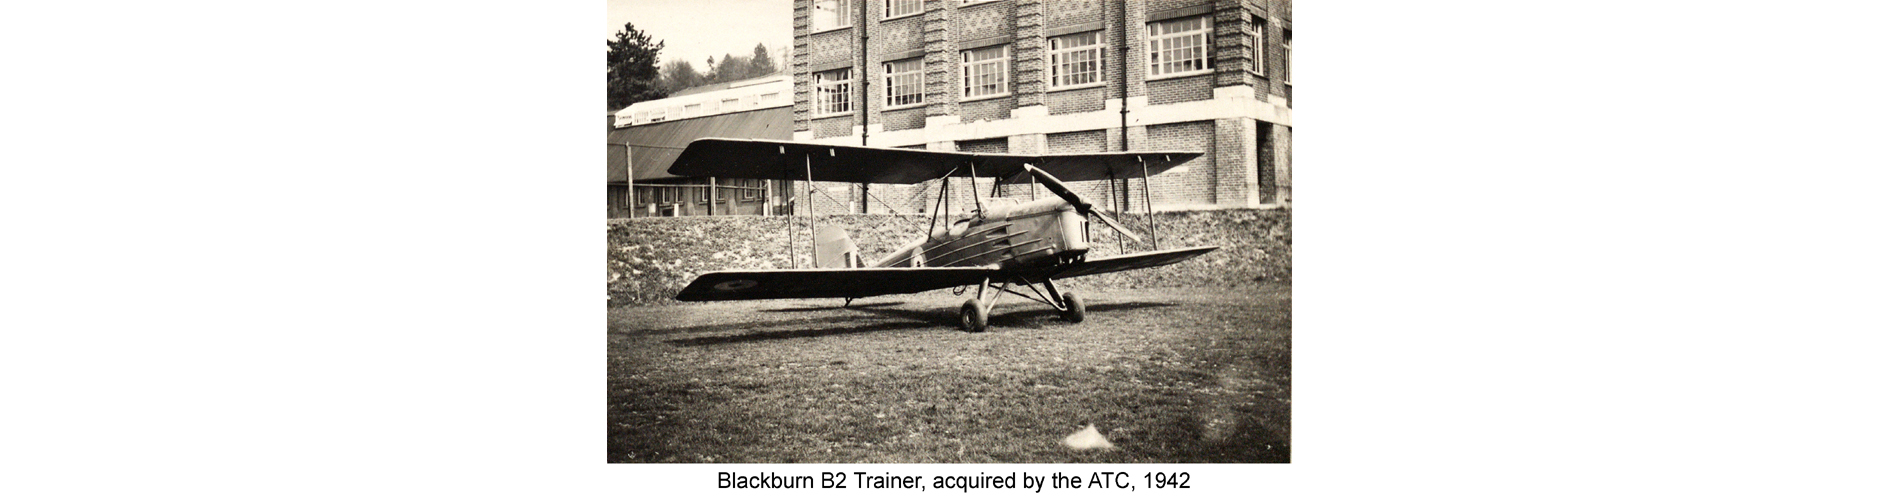 Blackburn B2 Trainer, acquired by the ATC, 1942